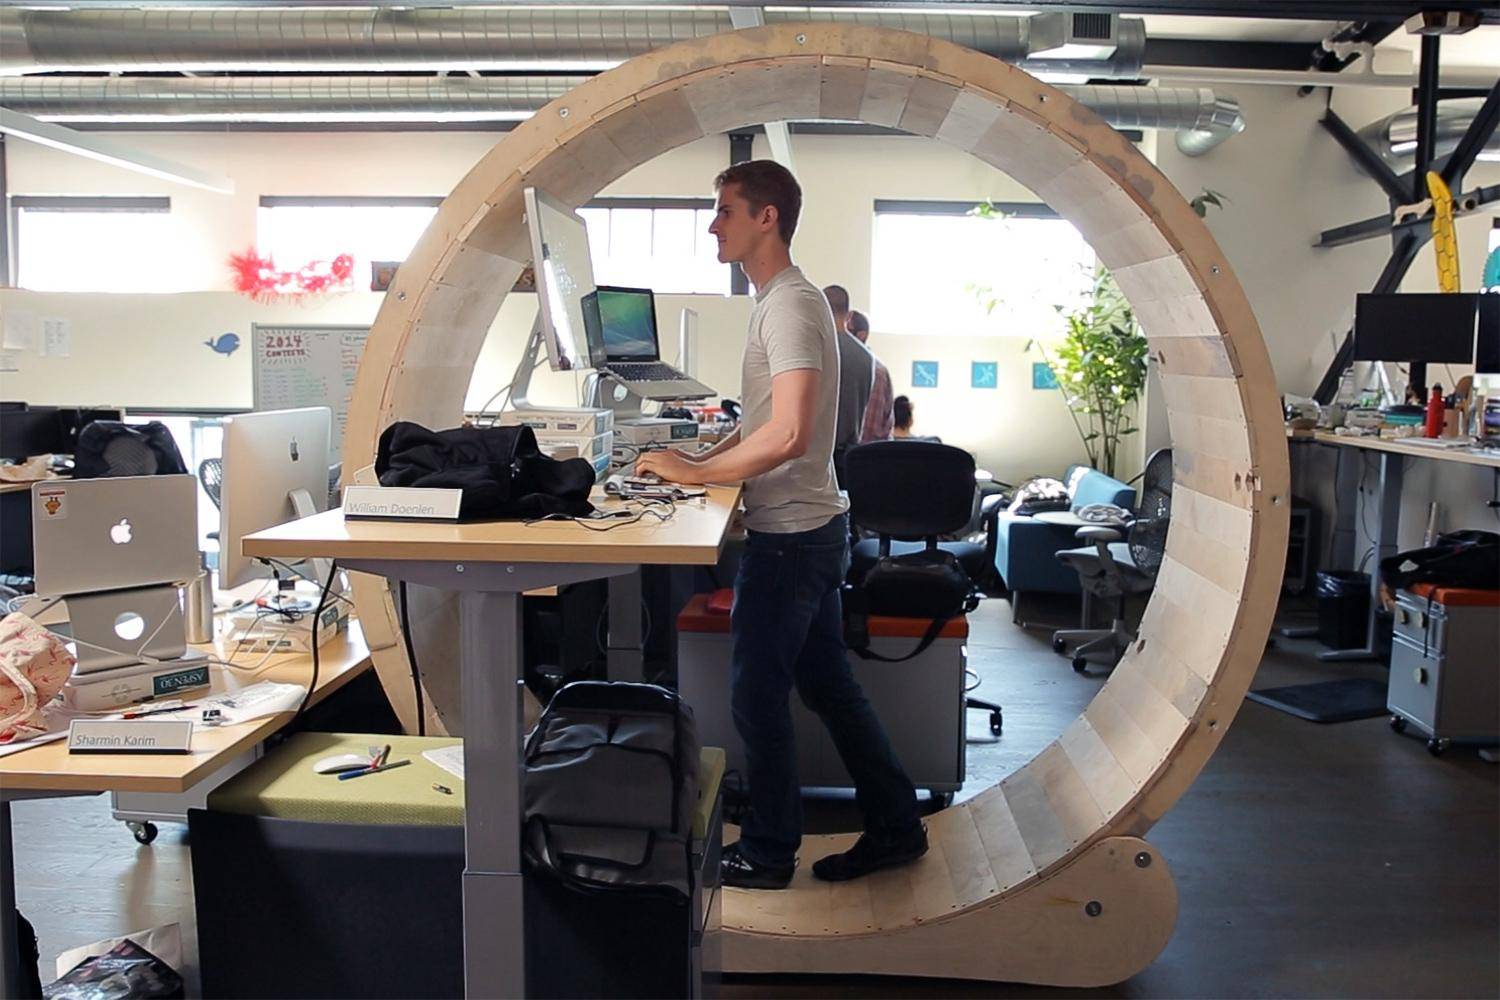 The Hamster Wheel Desk That Lets You Exercise At